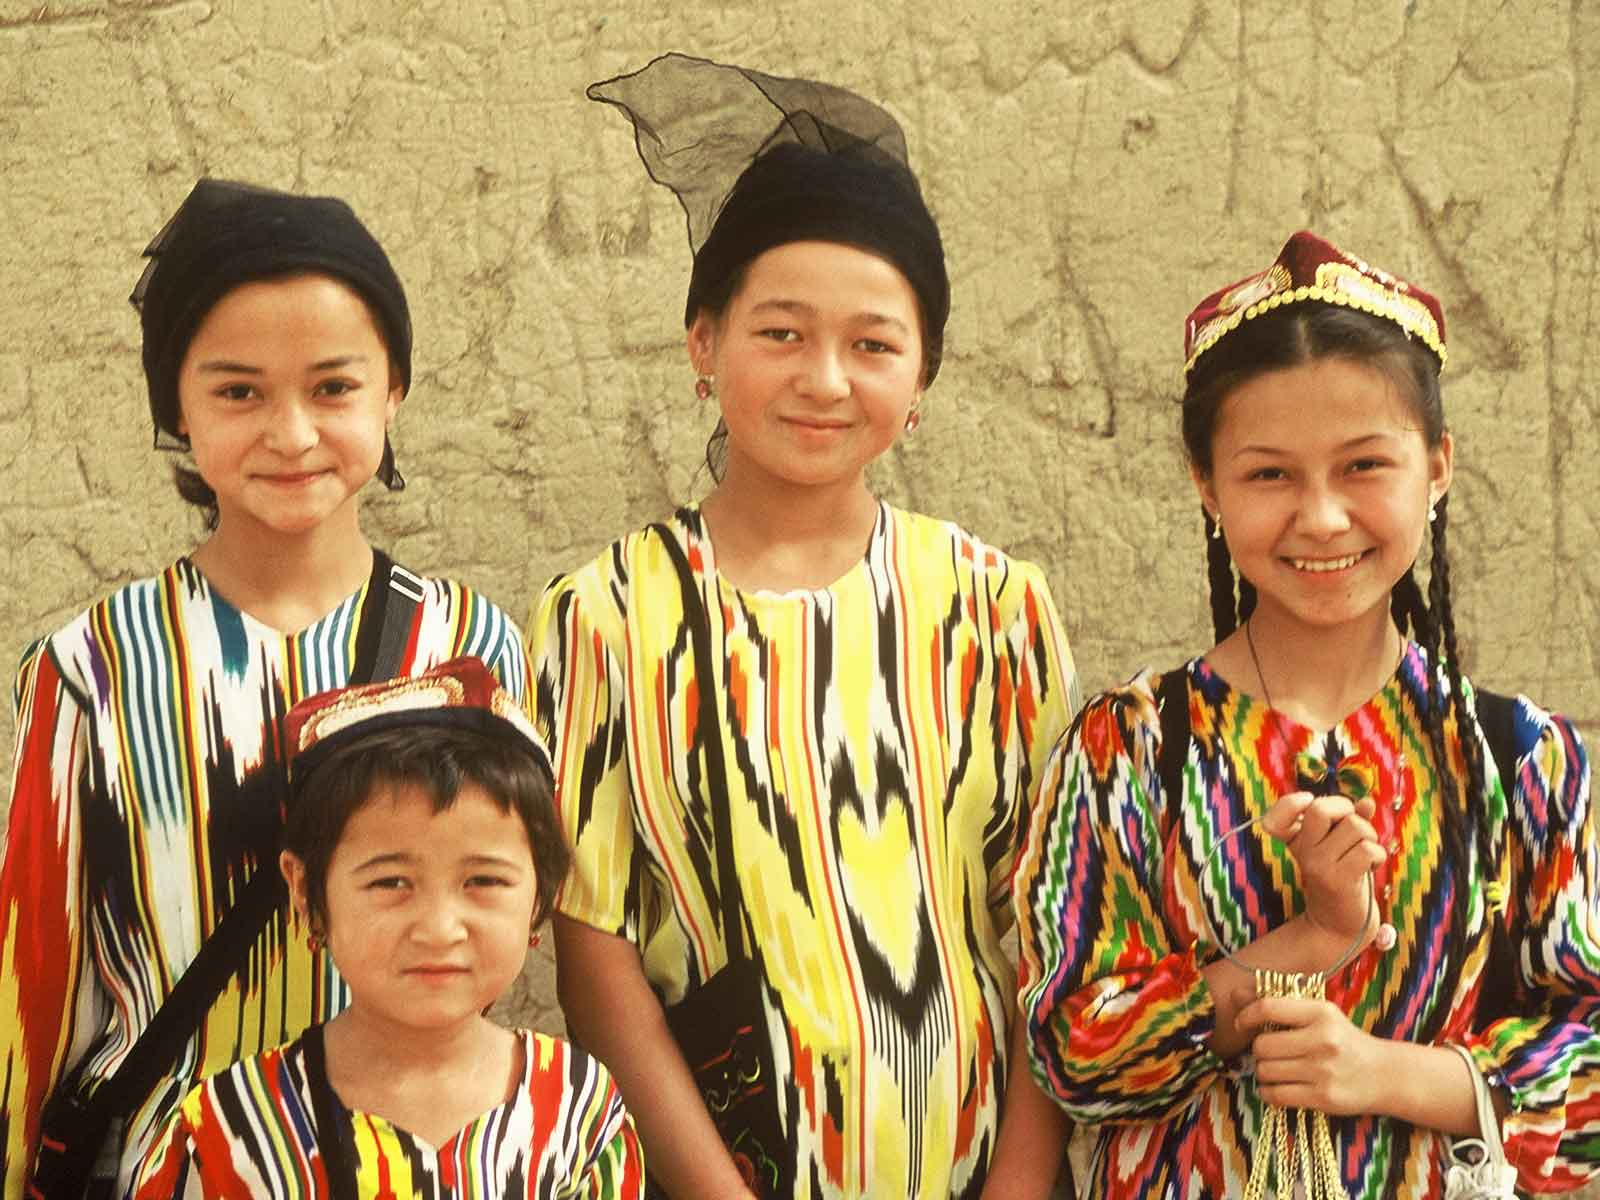 Uyghur youth - Geochang Ruins - China Silk Road Photo Journal - Steven Andrew Martin - Study Abroad Research